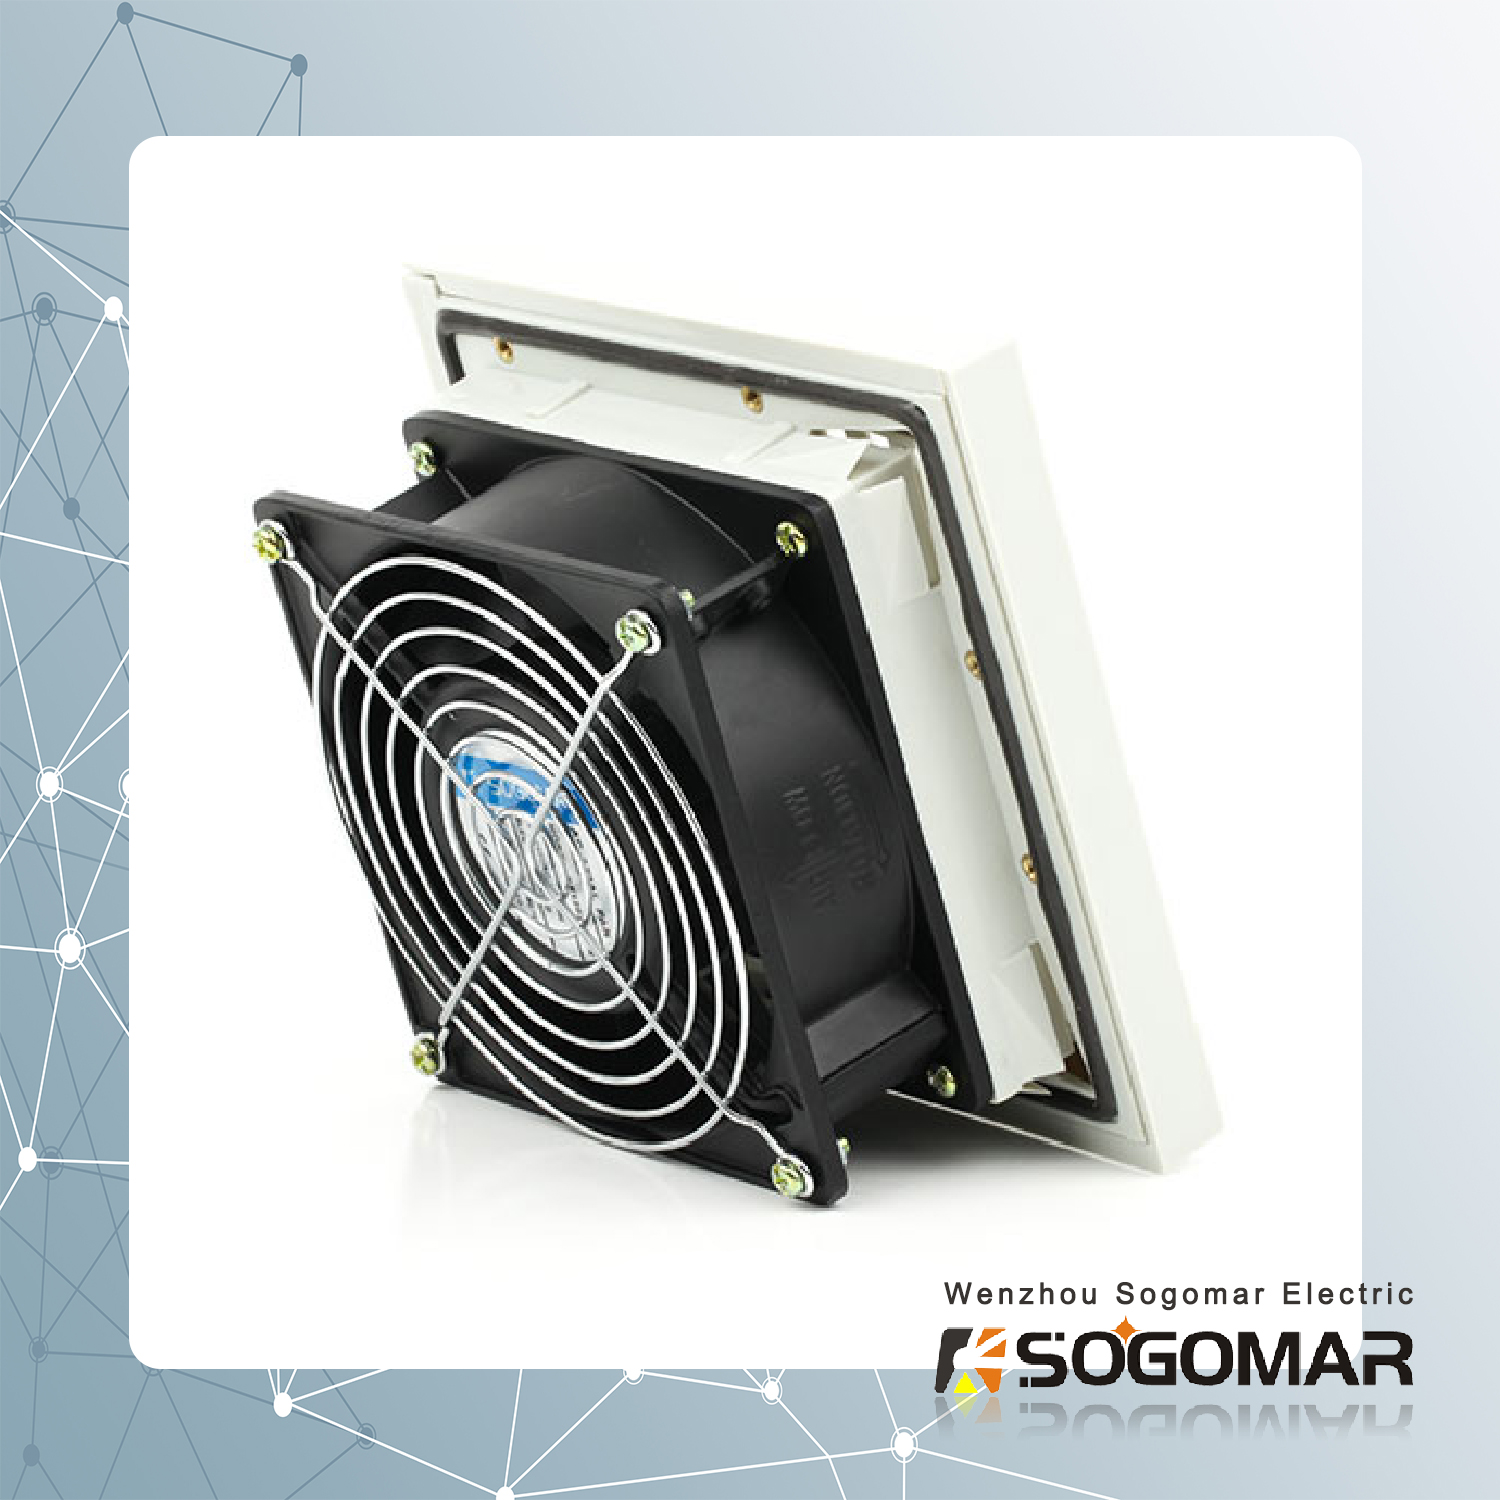 4 inch panel fan with filter and guard